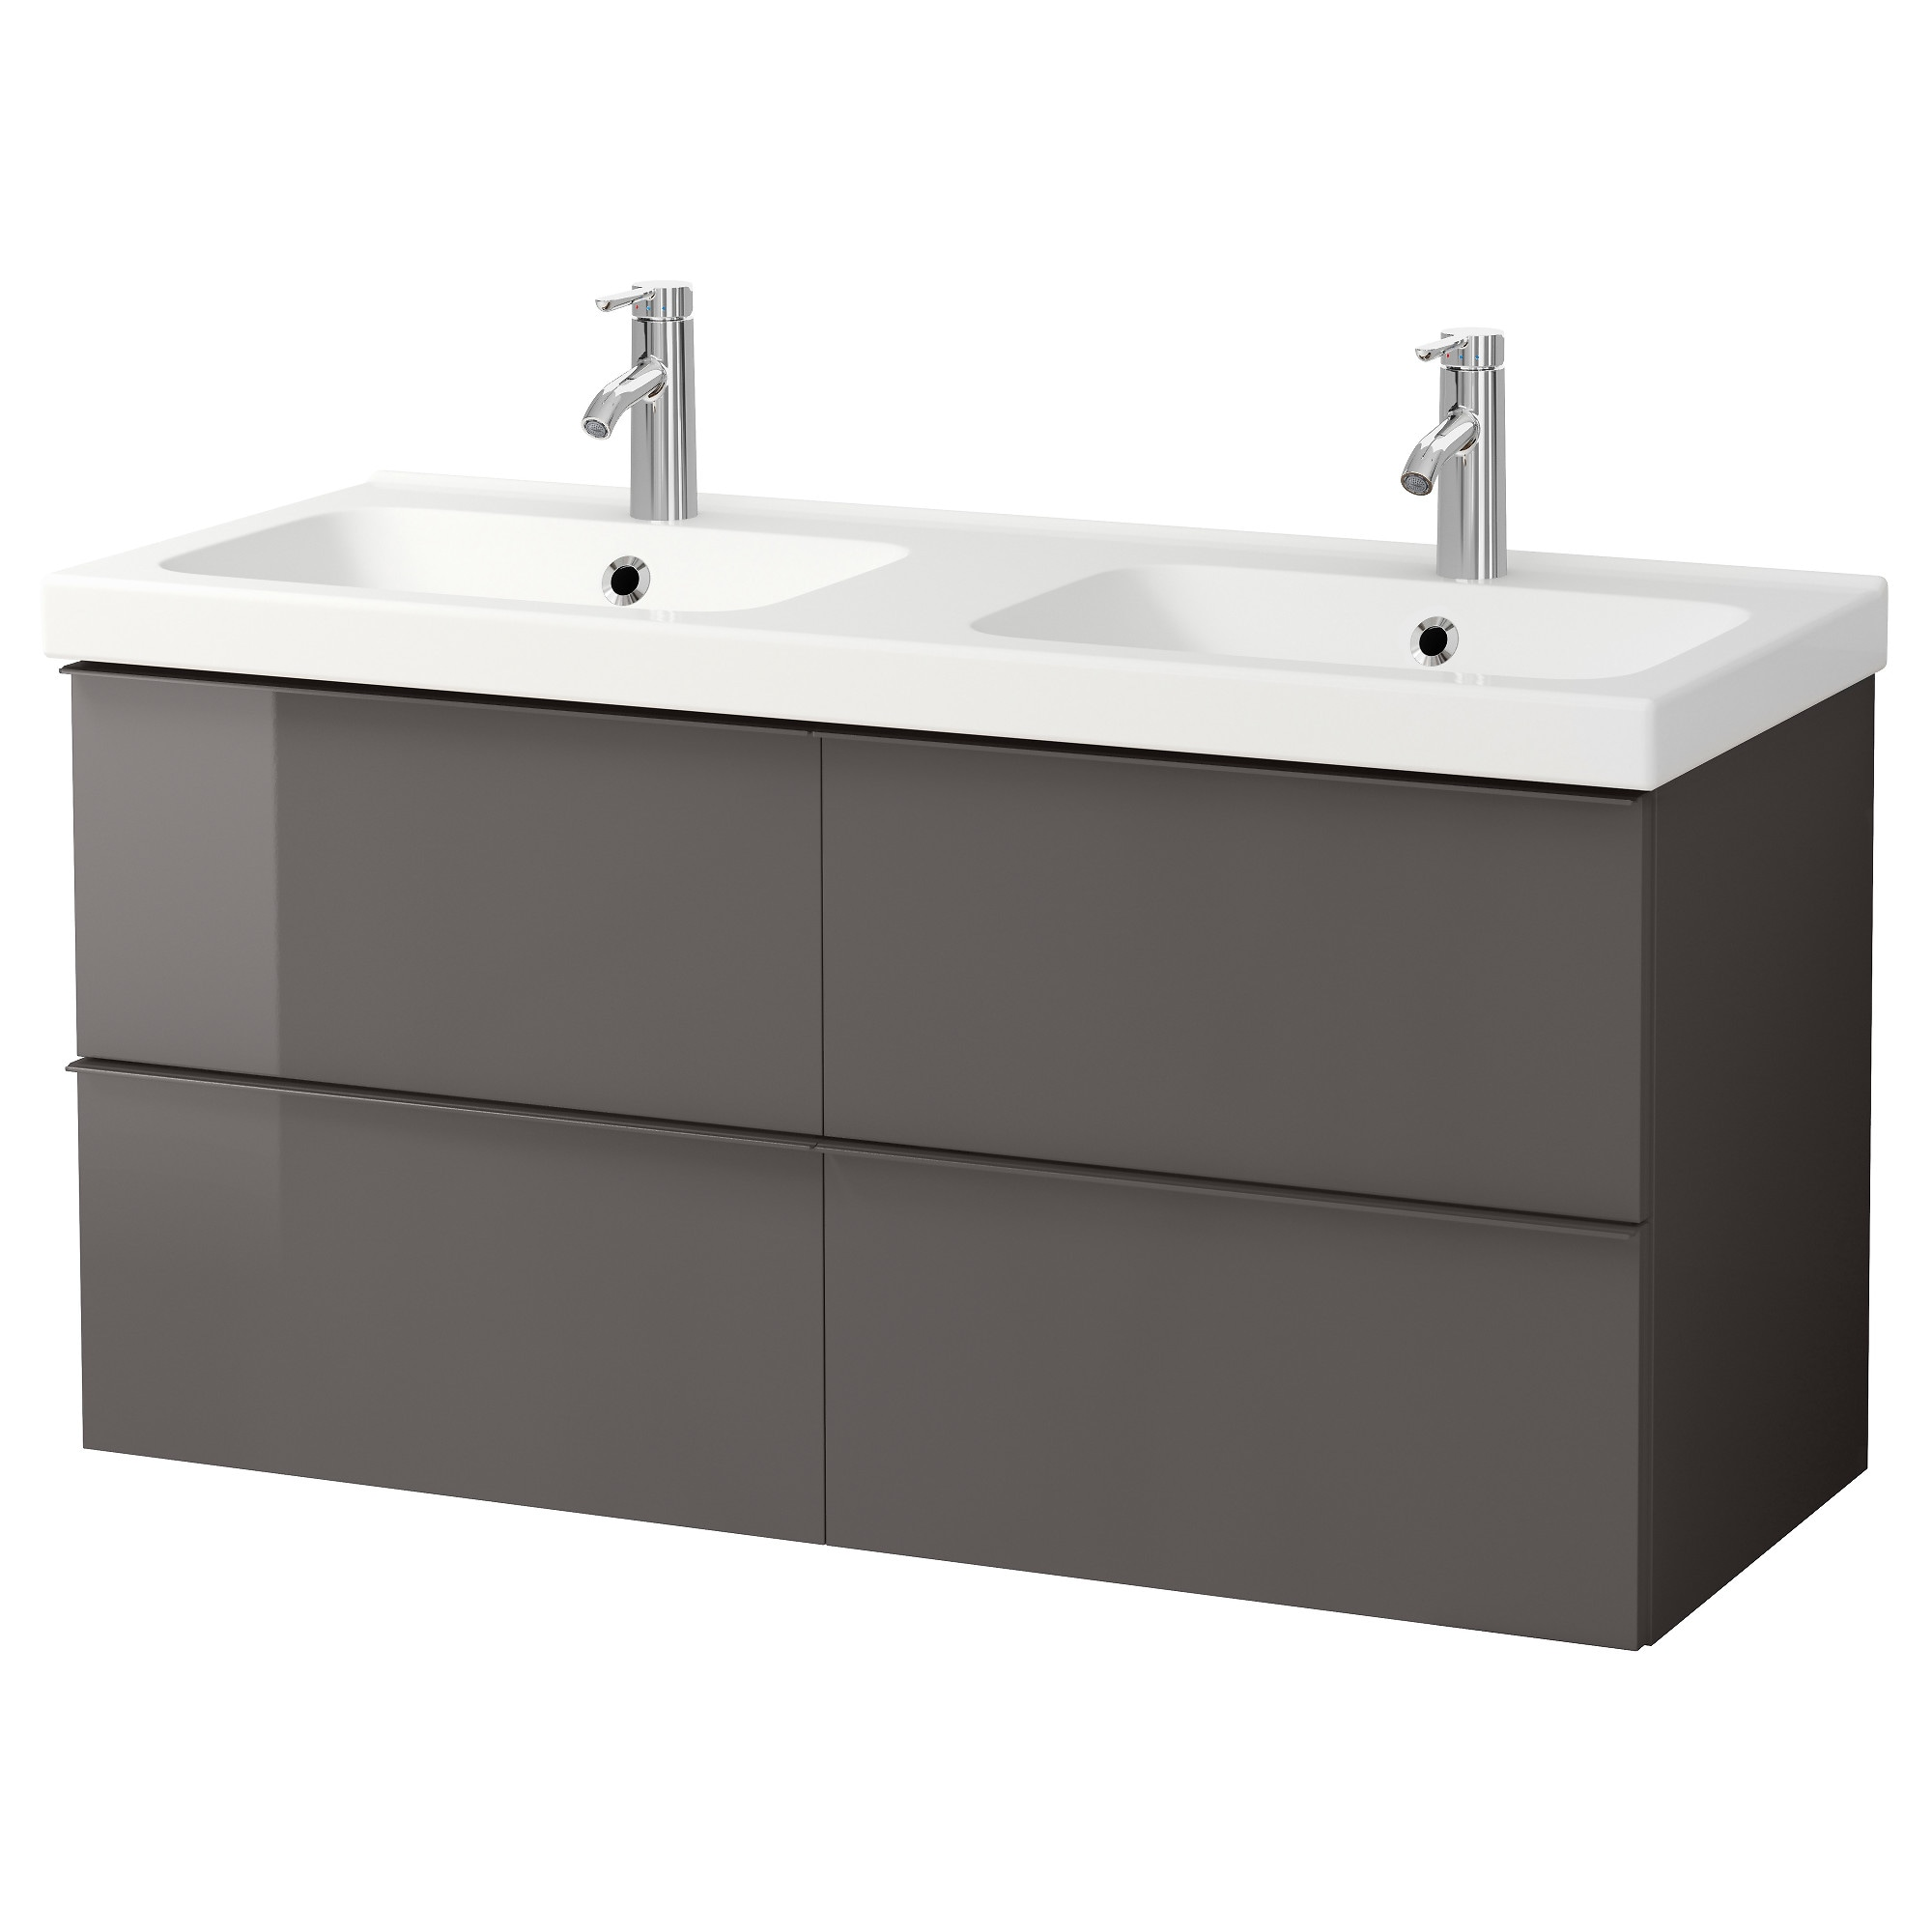 Morgon Odensvik Sink Cabinet With 4 Drawers High Gloss Gray 47 1 4x19 4x25 Ikea